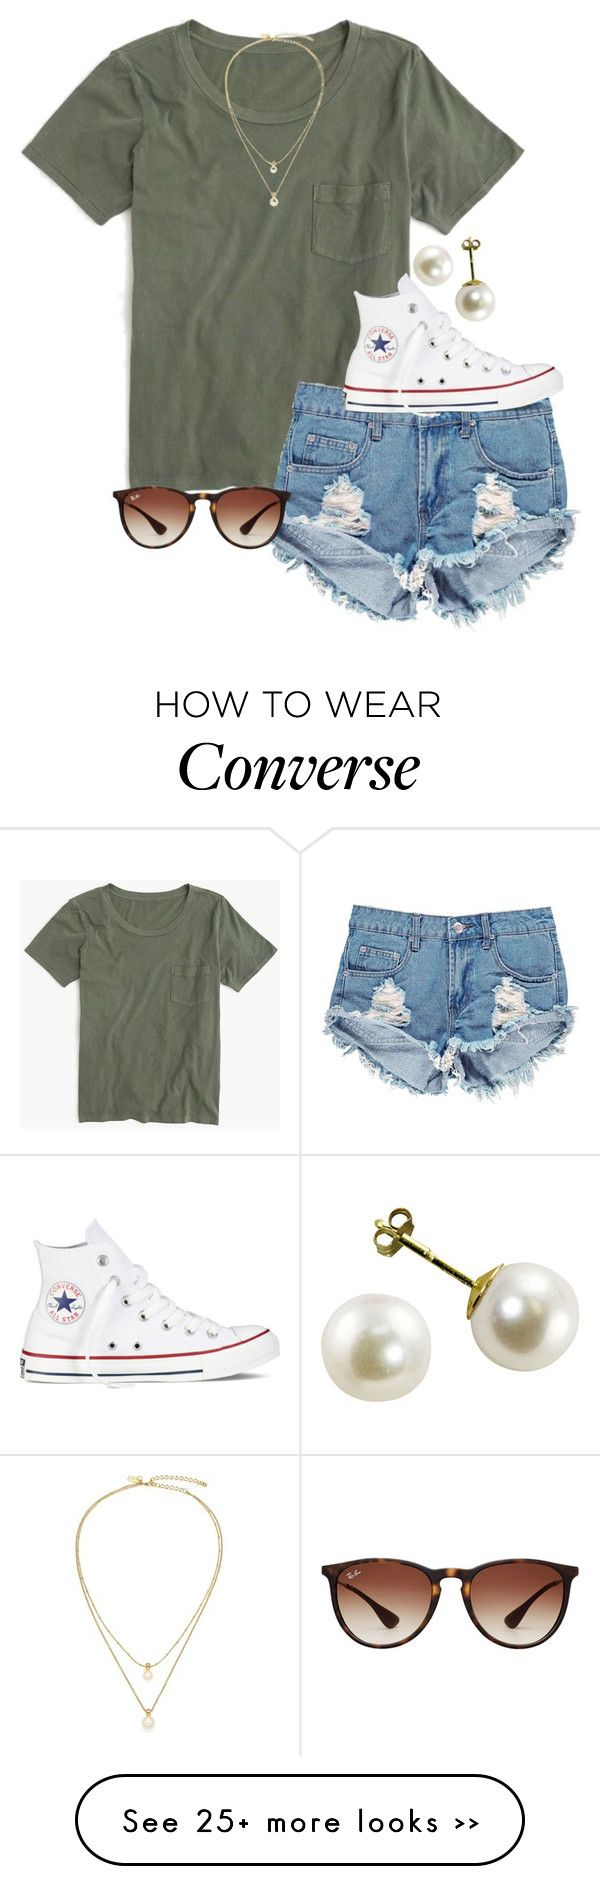 """"" by econgdon on Polyvore featuring J.Crew, Boohoo, Kate Spade, Converse and Ray-Ban More"